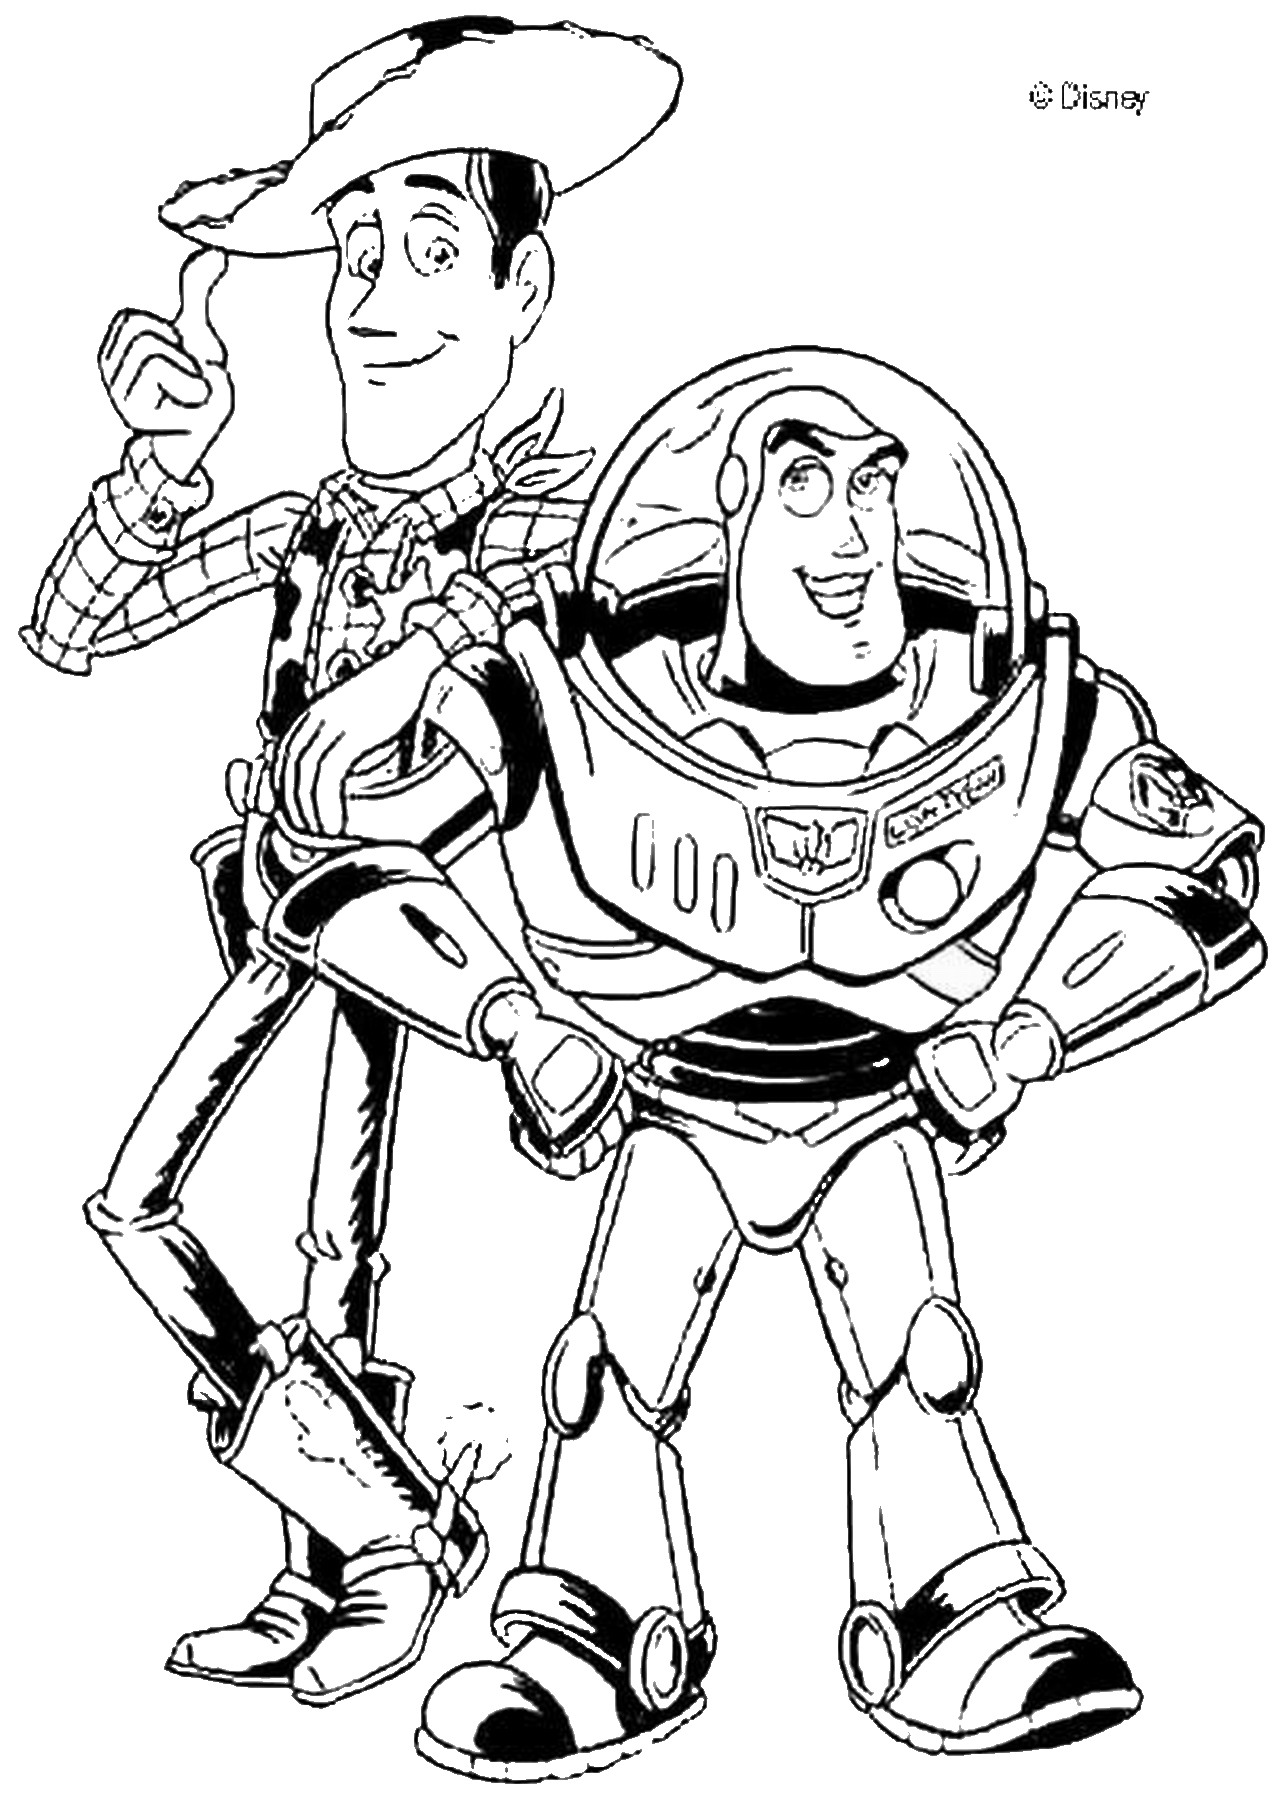 coloring toy story printables toy story coloring pages disneyclipscom story coloring toy printables